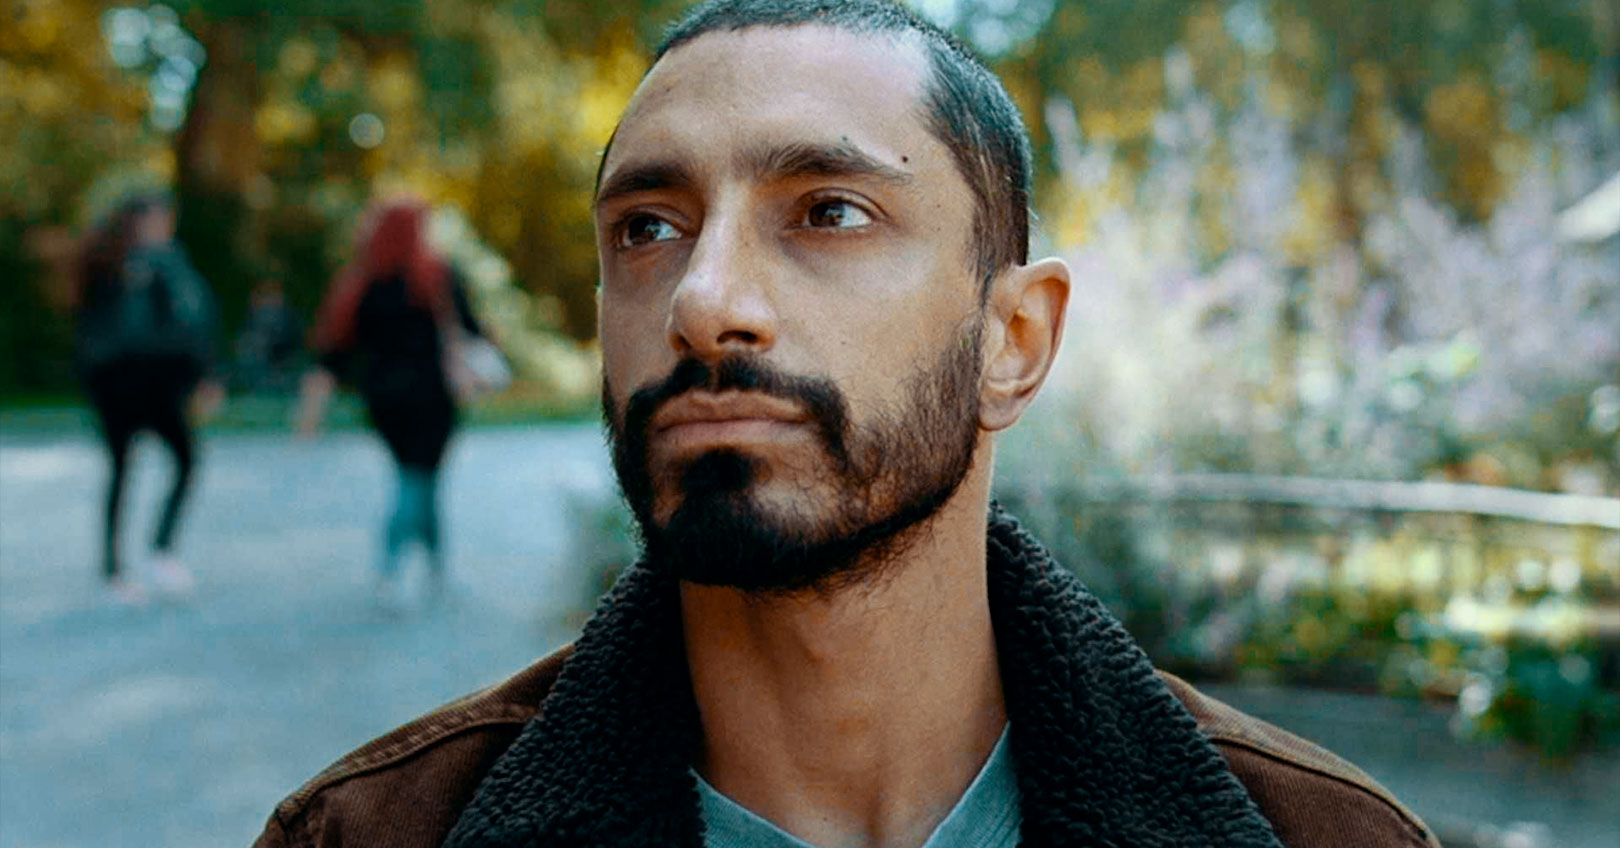 Sound of Music - Riz Ahmed